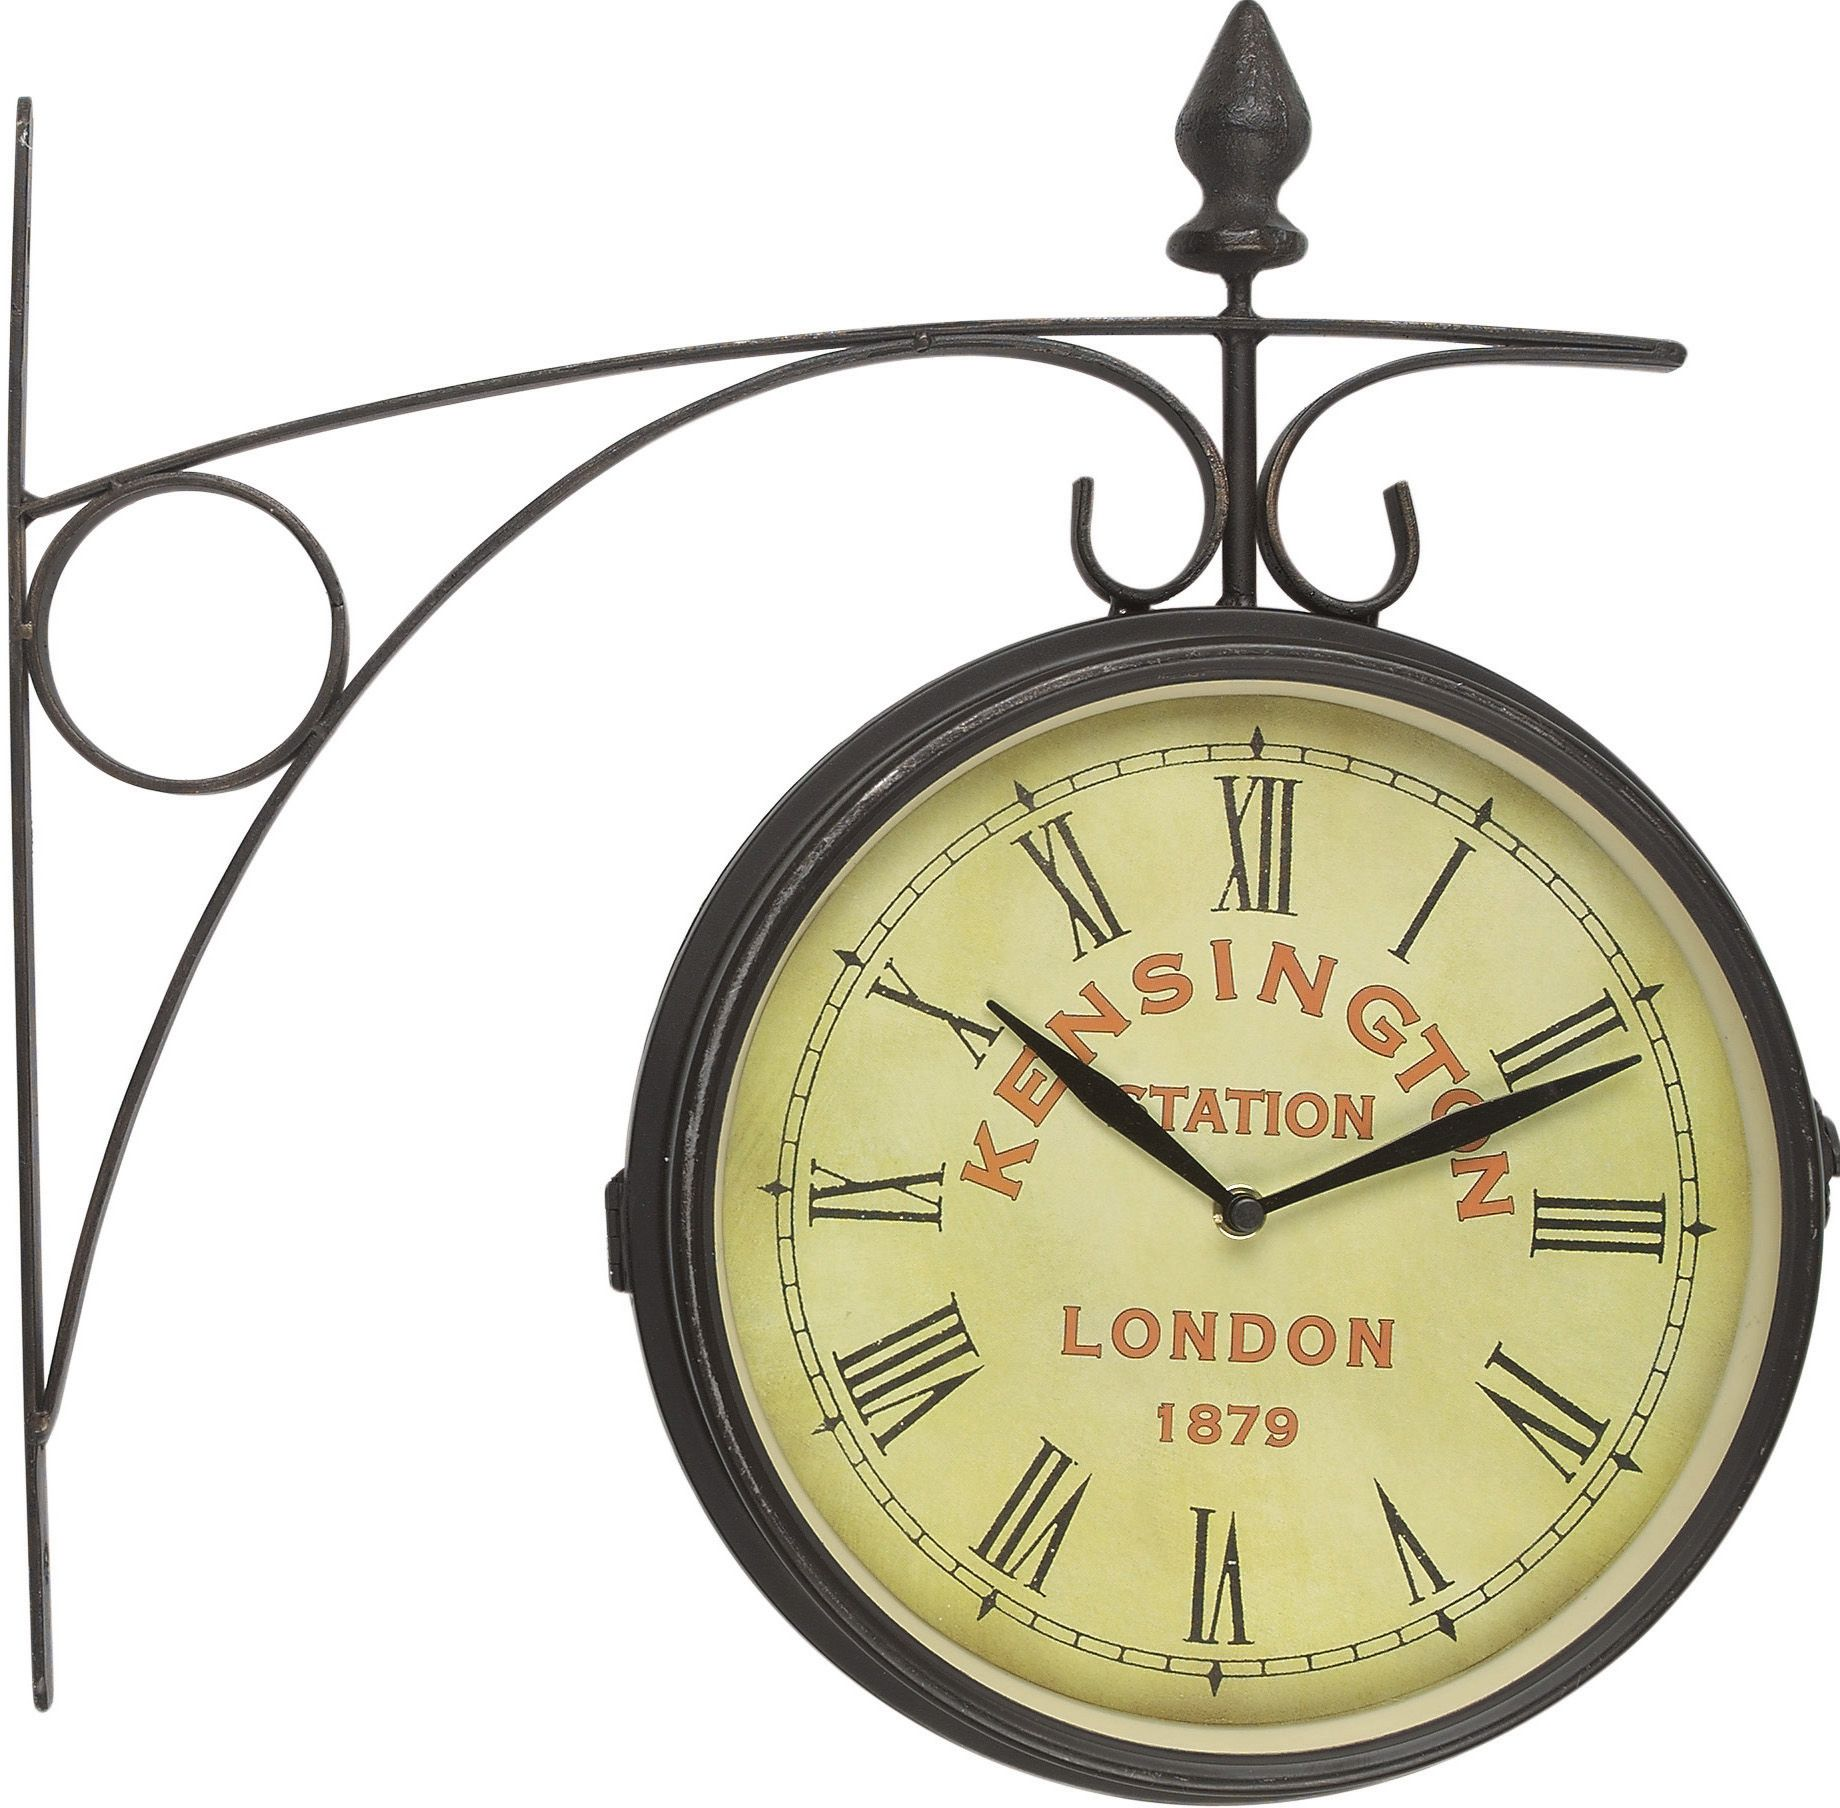 Kare Design Wanduhr Kare Design Wanduhr Old London Station Im Look Einer